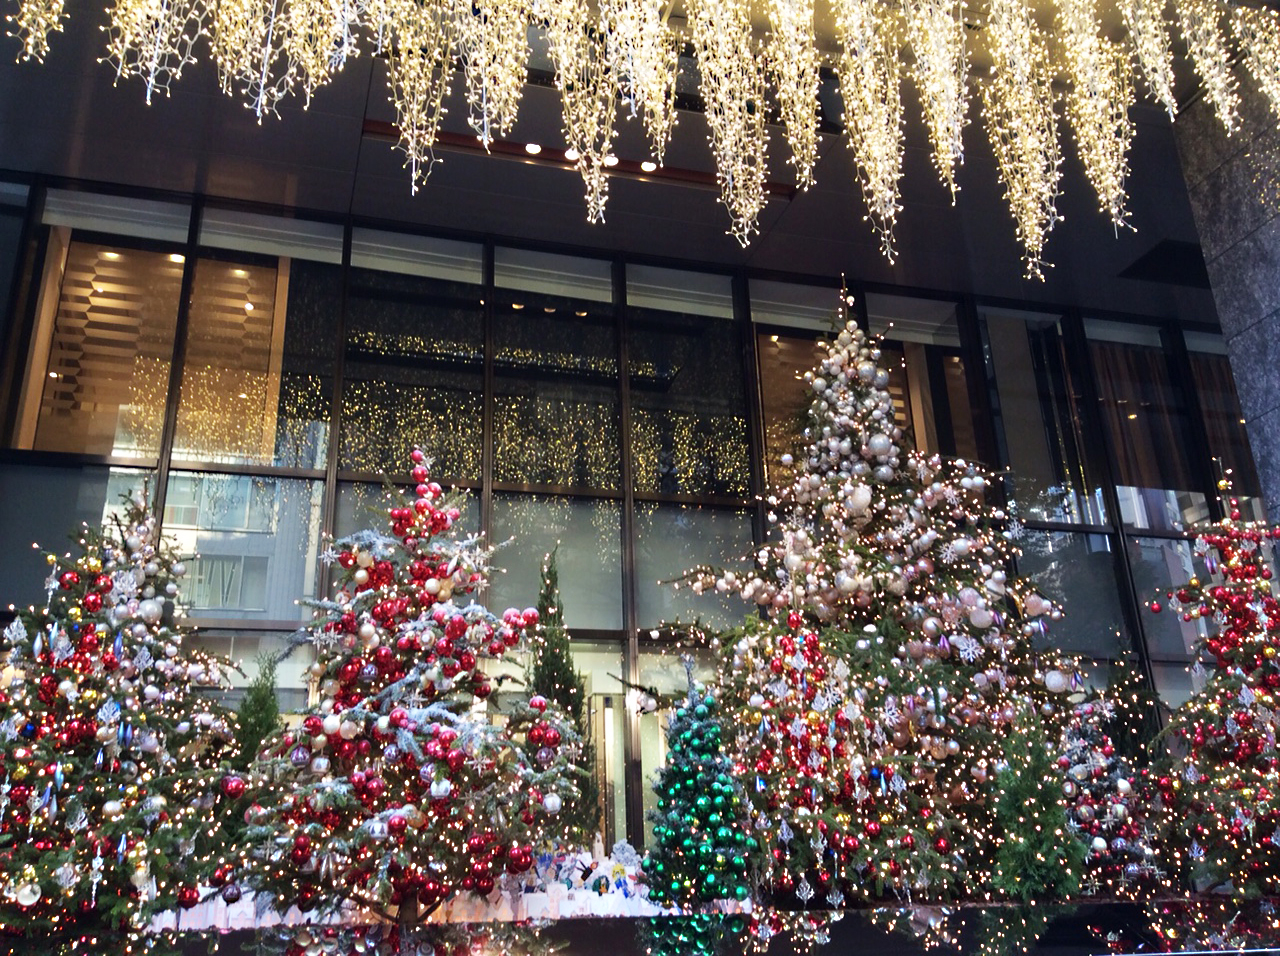 A dazzle of mainly red and white baubles and lights on a small forest of artificial fir trees outside Mitsukoshi Department store